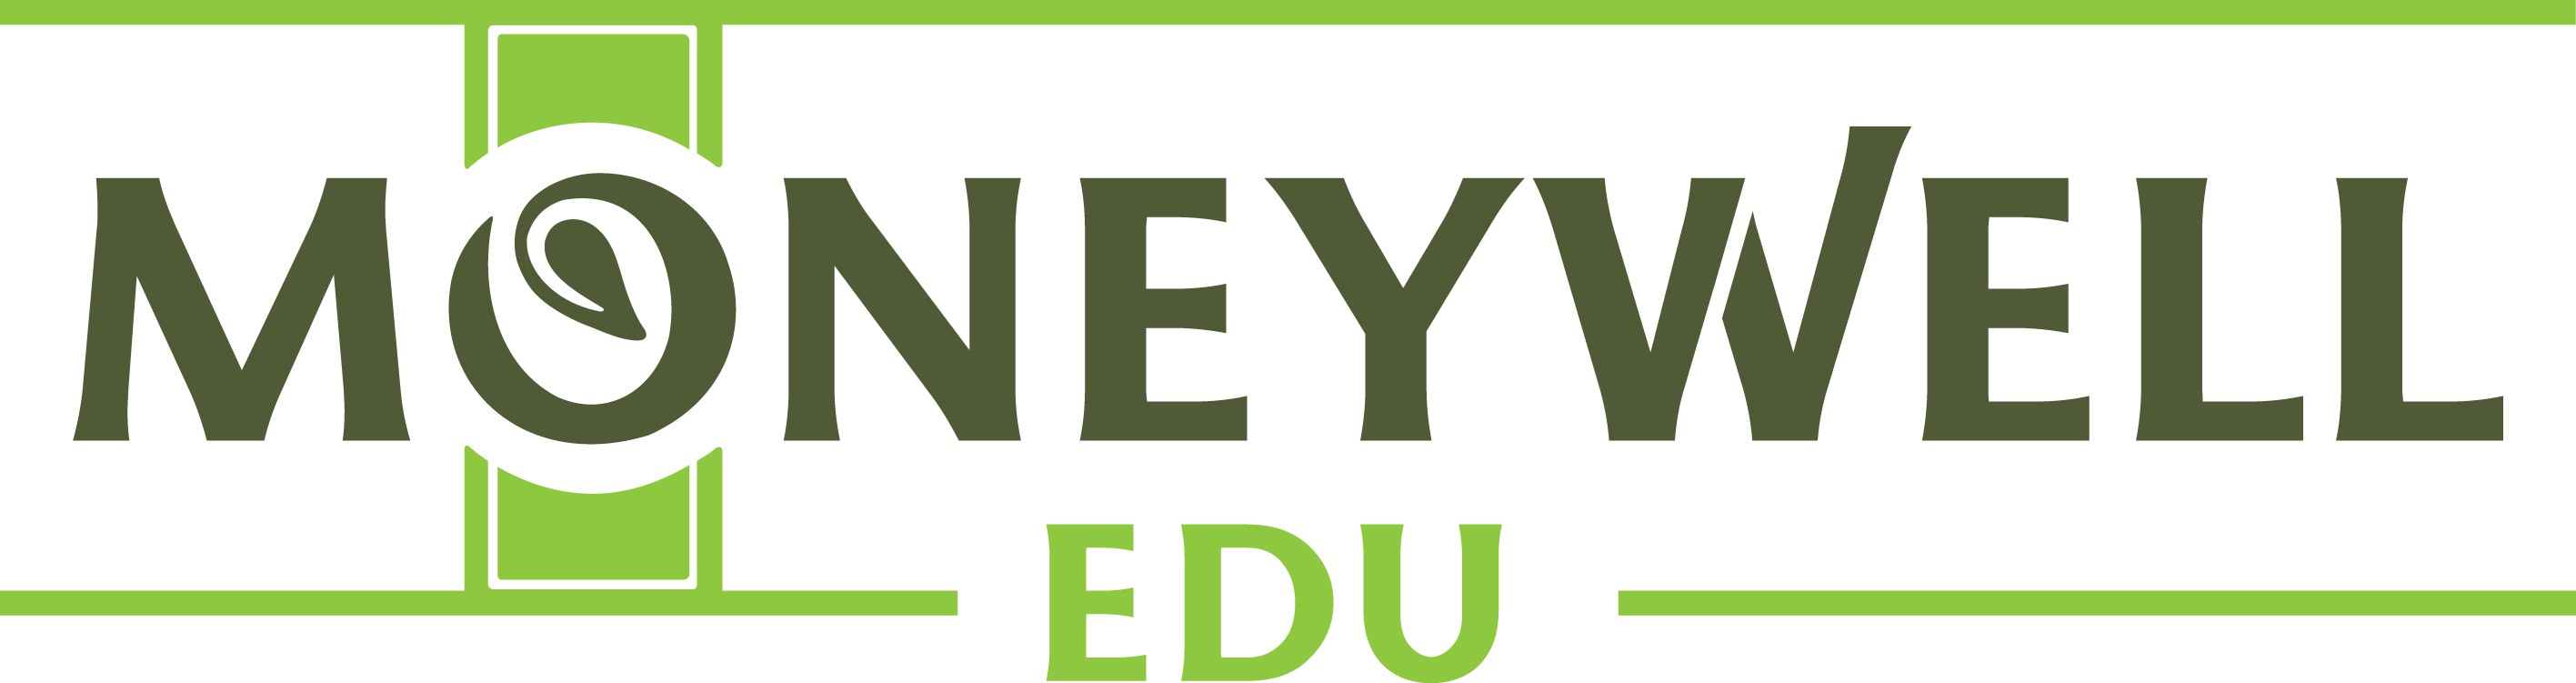 Logo for Moneywell EDU course for CLEMSON Univ online